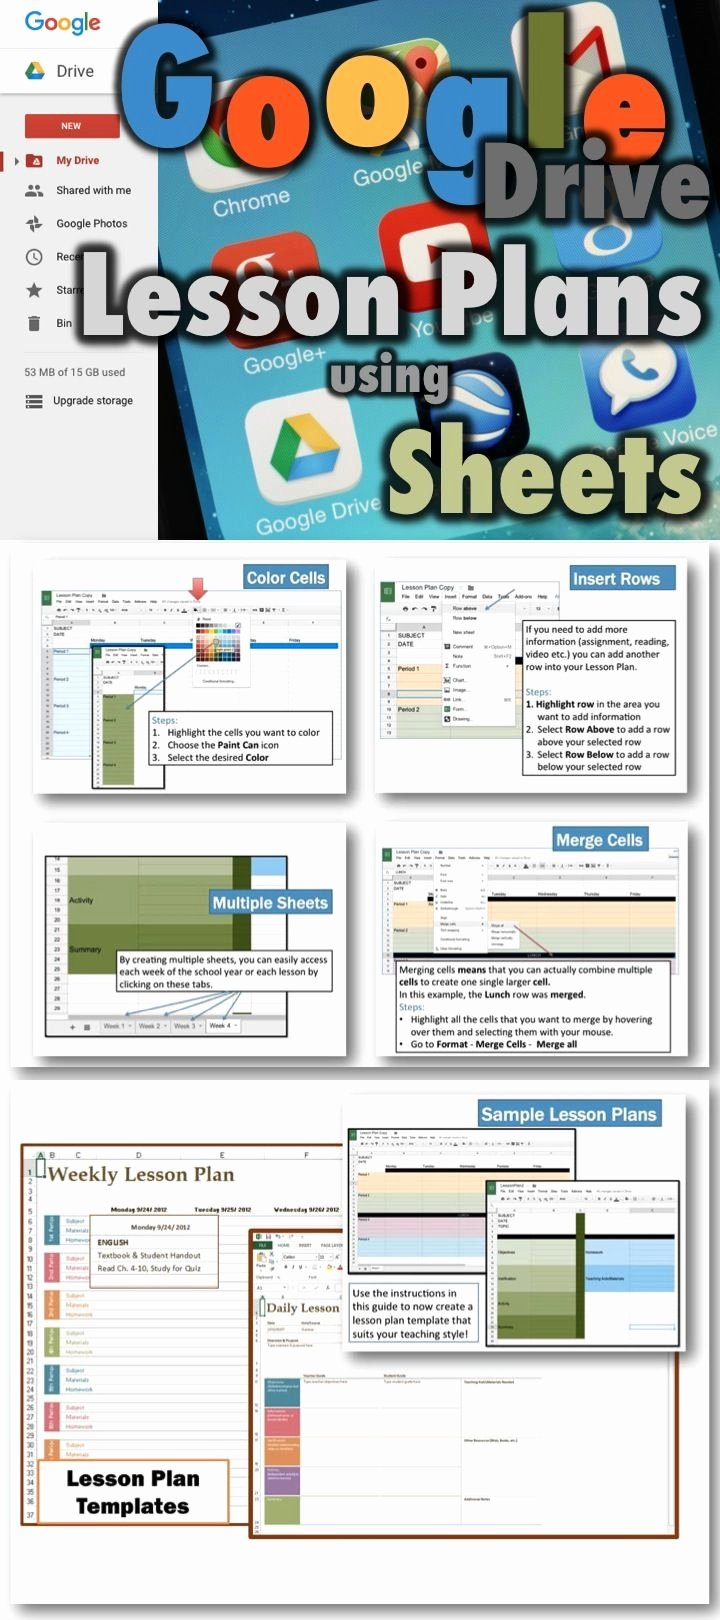 Middle School Schedule Template Beautiful Lesson Plans Using Google Drive Sheets